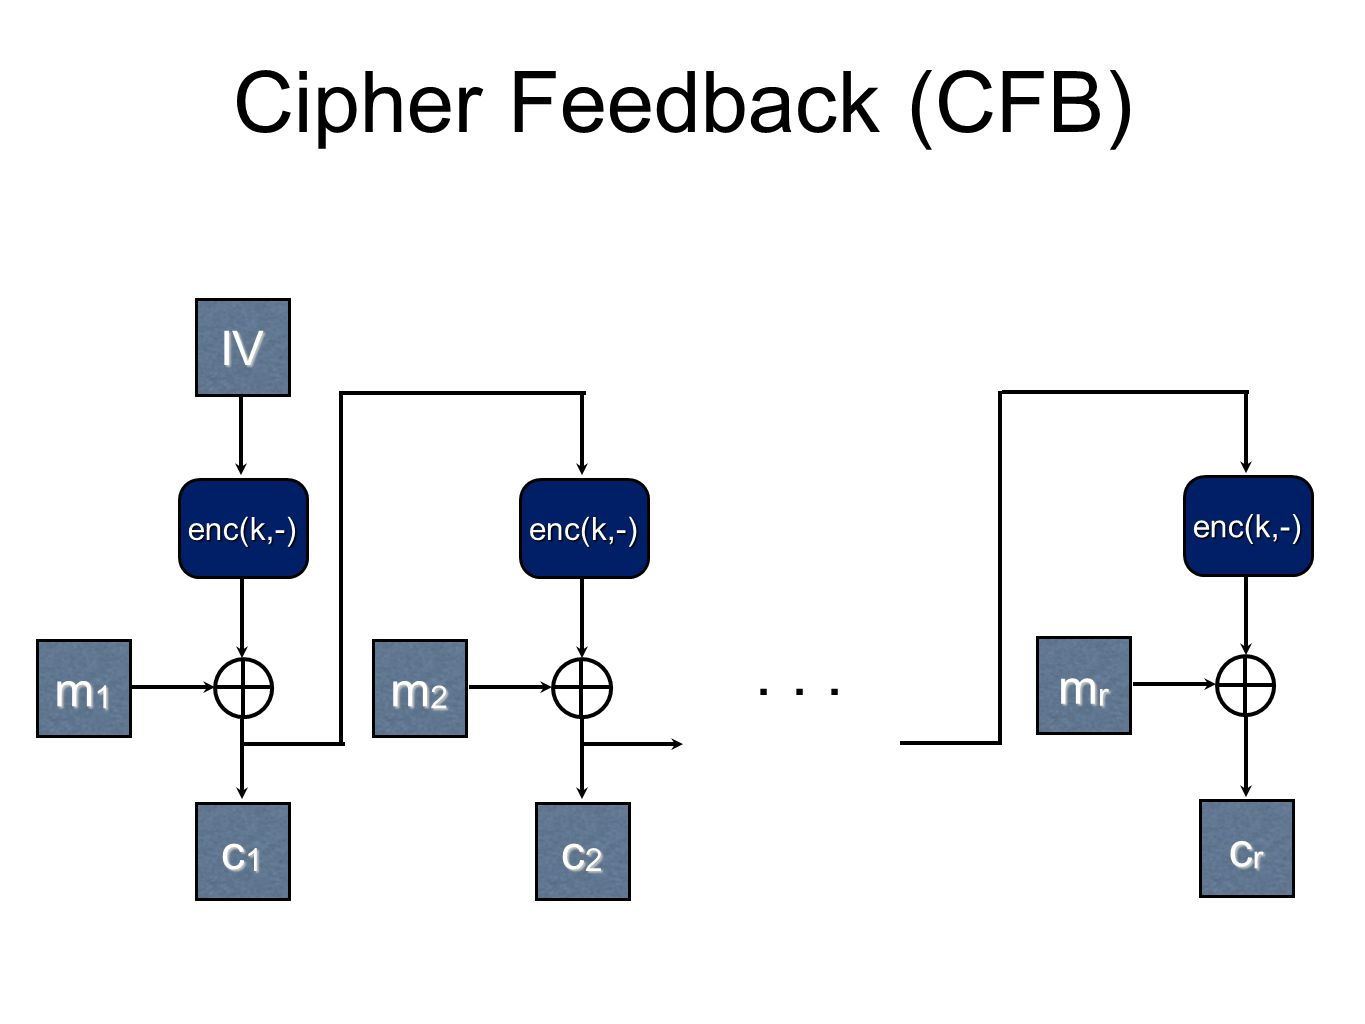 Cipher Feedback (CFB) IV m1 m2 mr c1 c2 cr enc(k,-) enc(k,-)